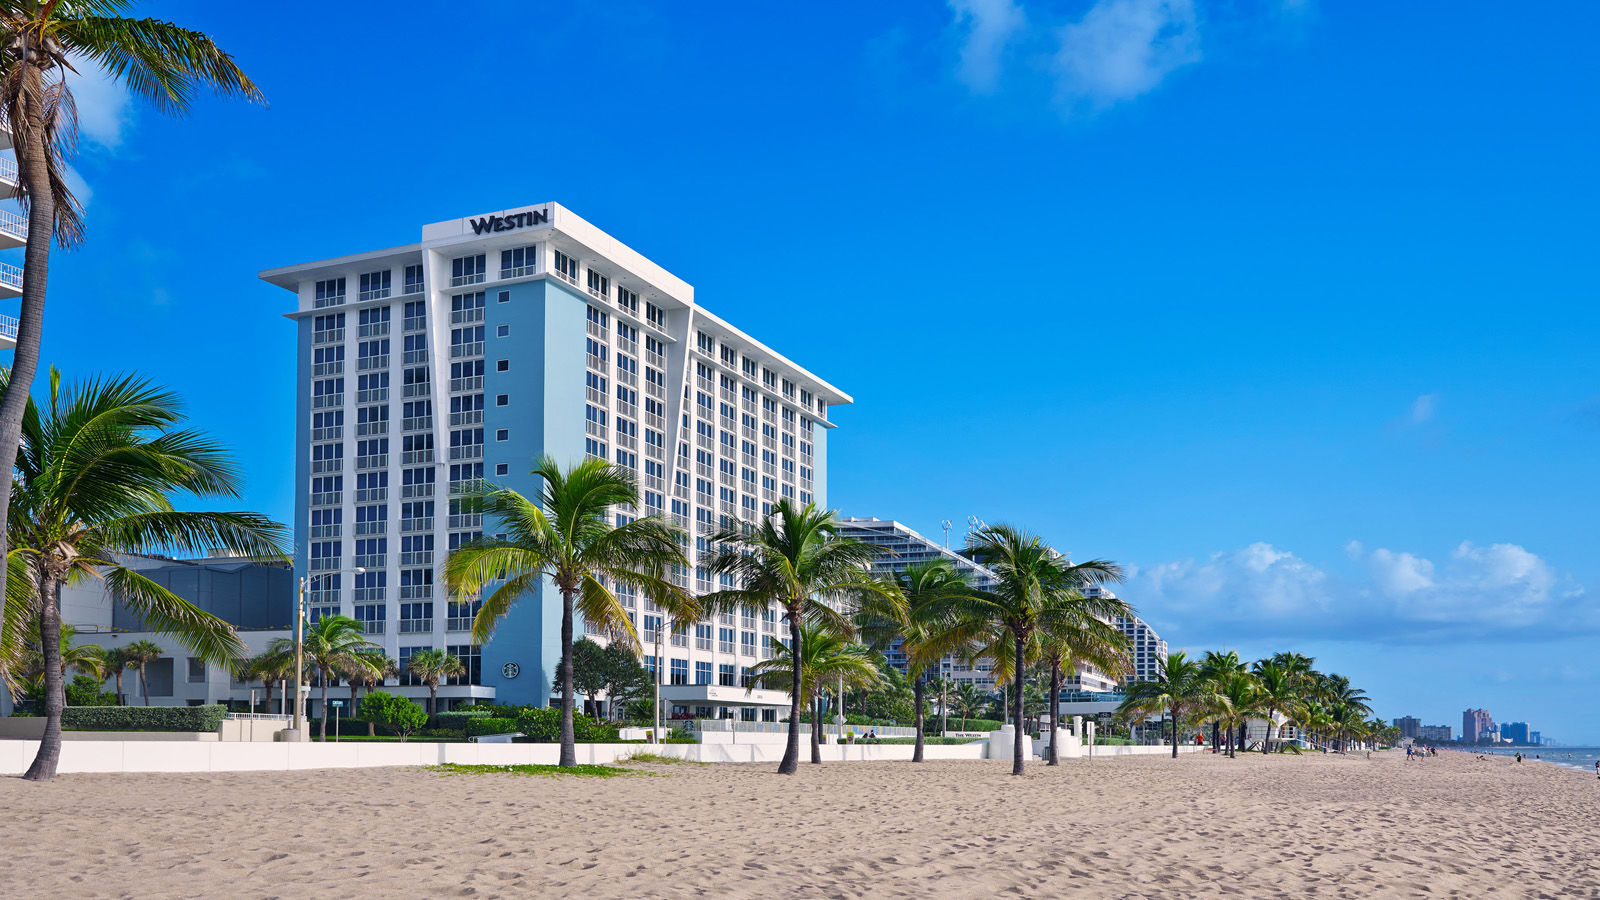 The Westin Fort Lauderdale Beach Resort - Exterior